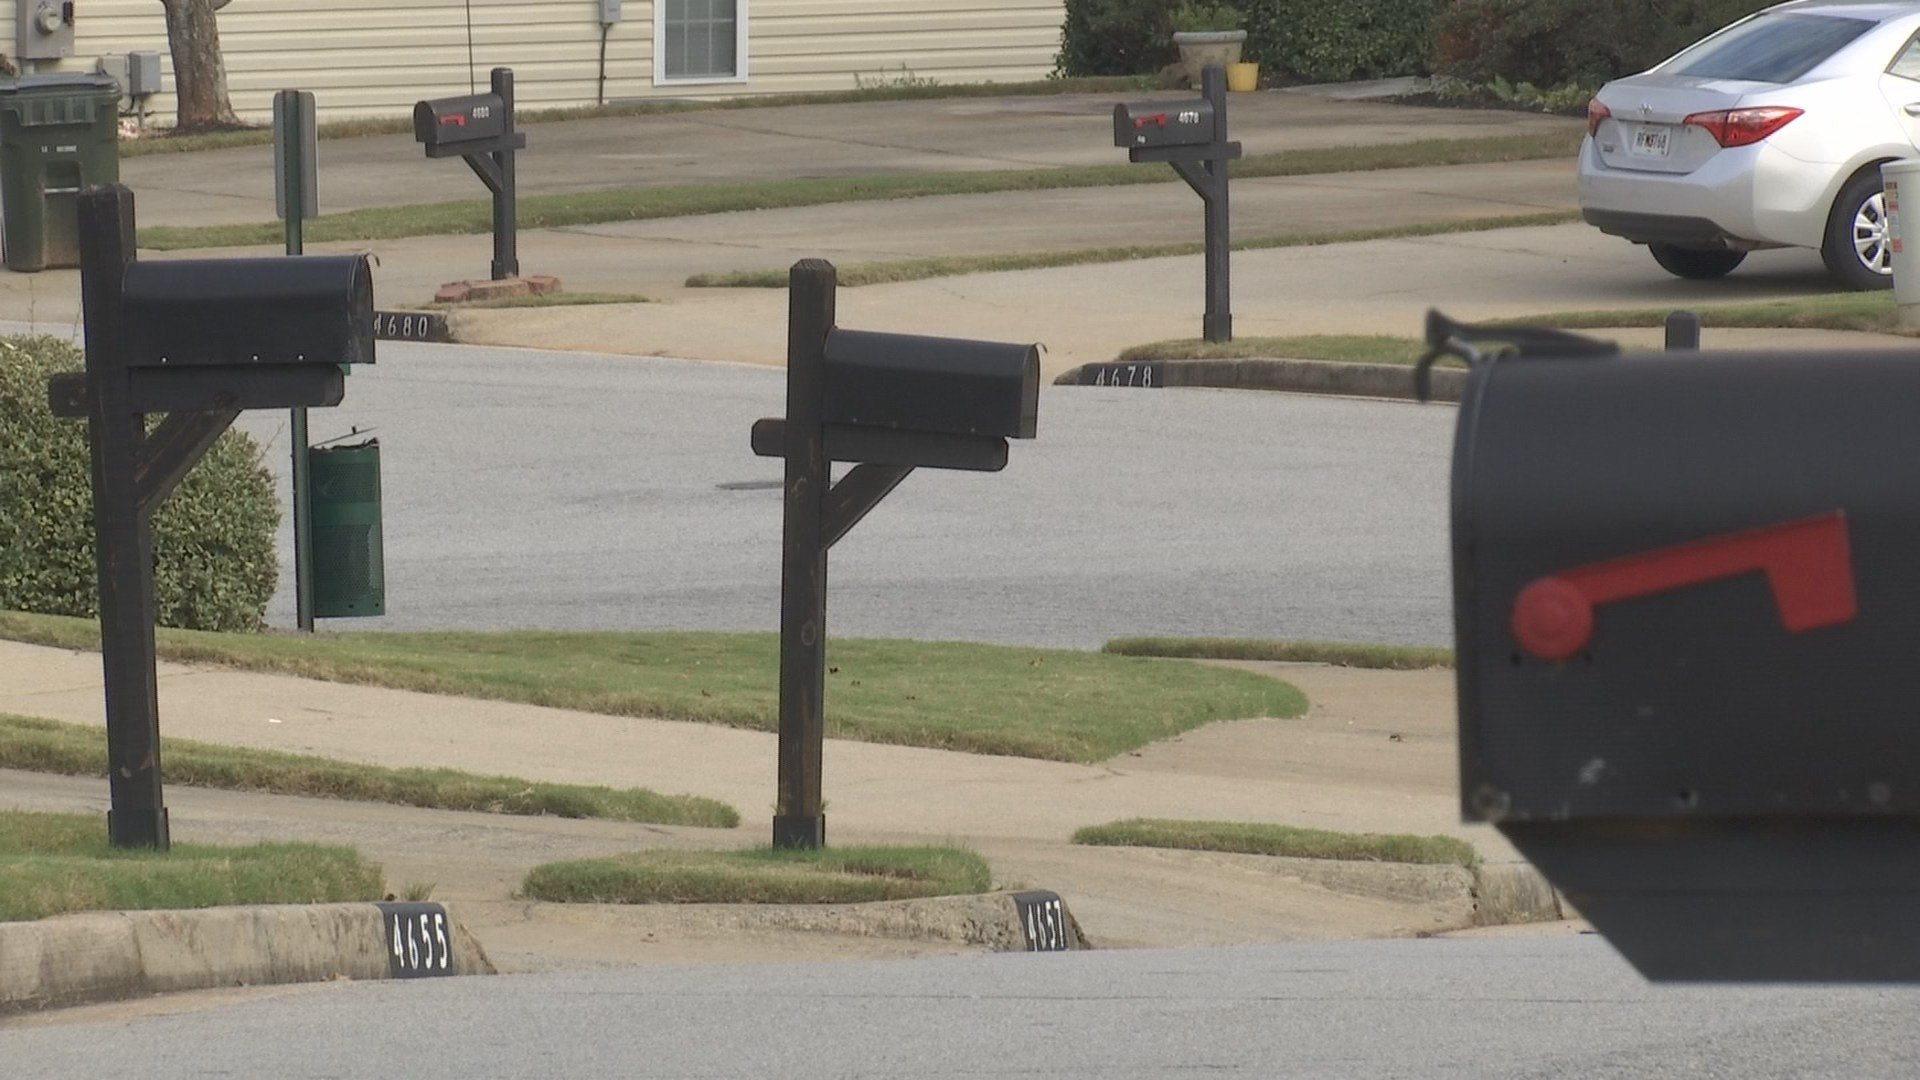 A mailed advertisement for prostitution went to every house in a nearby neighborhood (WGCL)